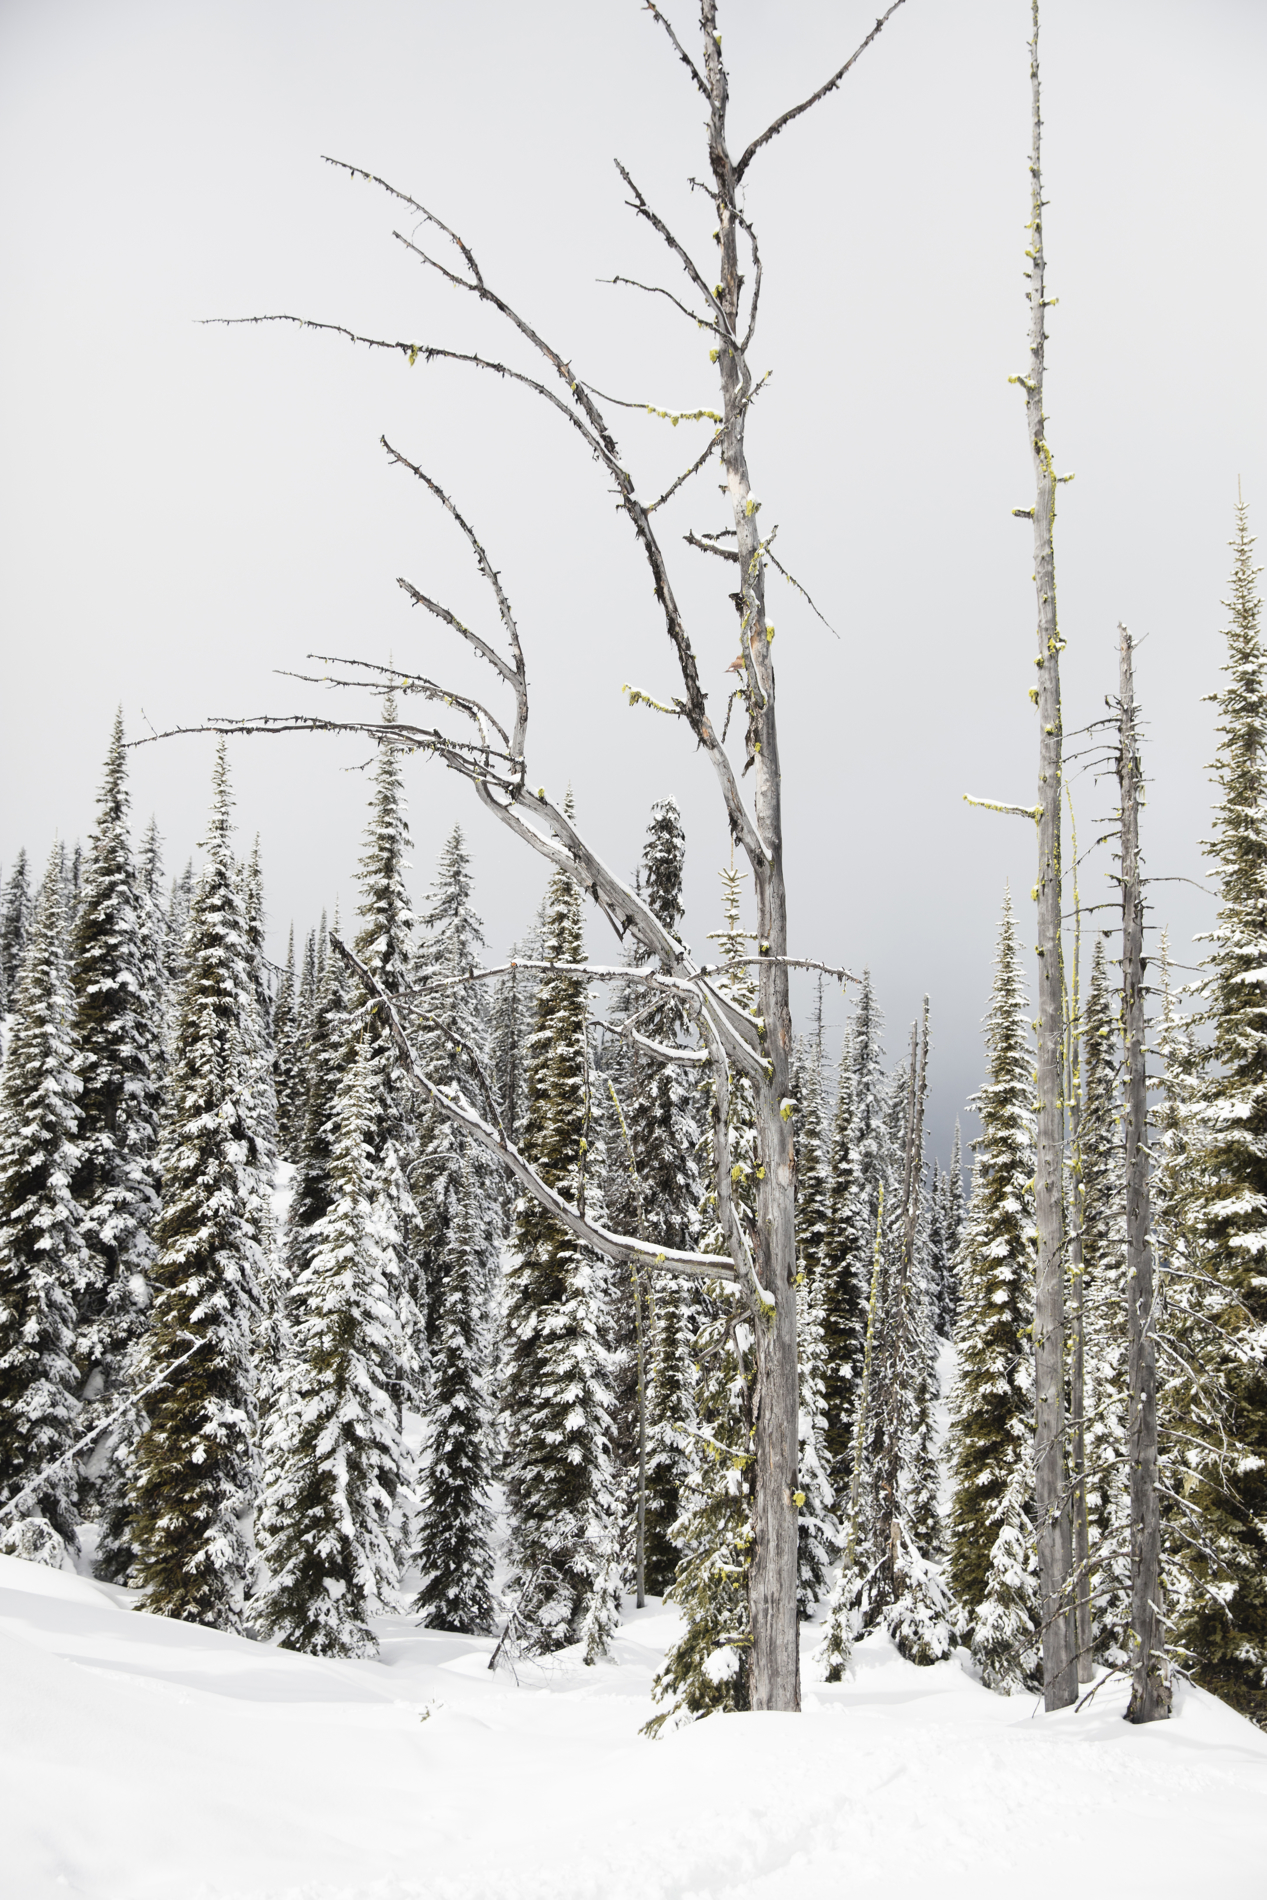 A vertical Landscape photo taken in North America of snow and trees in shade of green , black and white